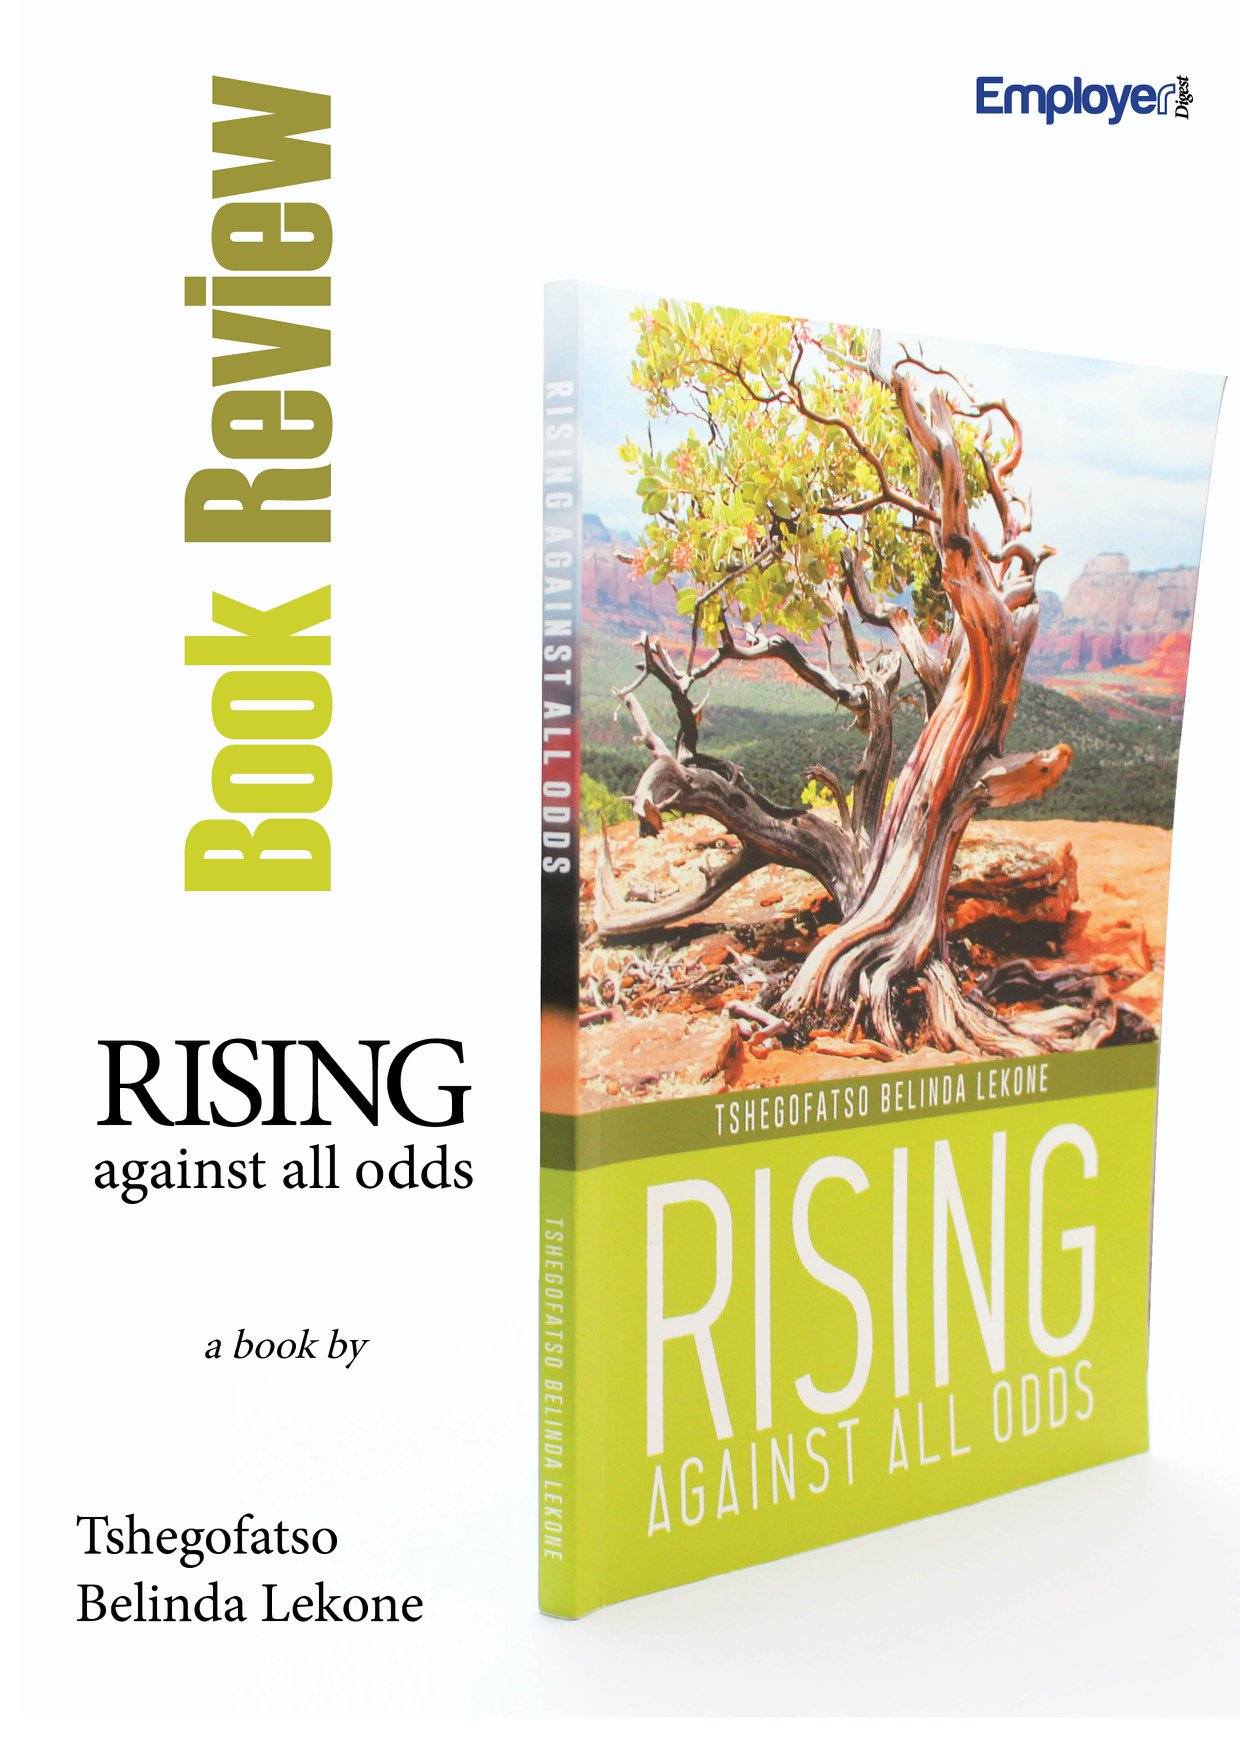 Book Review: Rising against all odds – Employer-Digest-Botswana